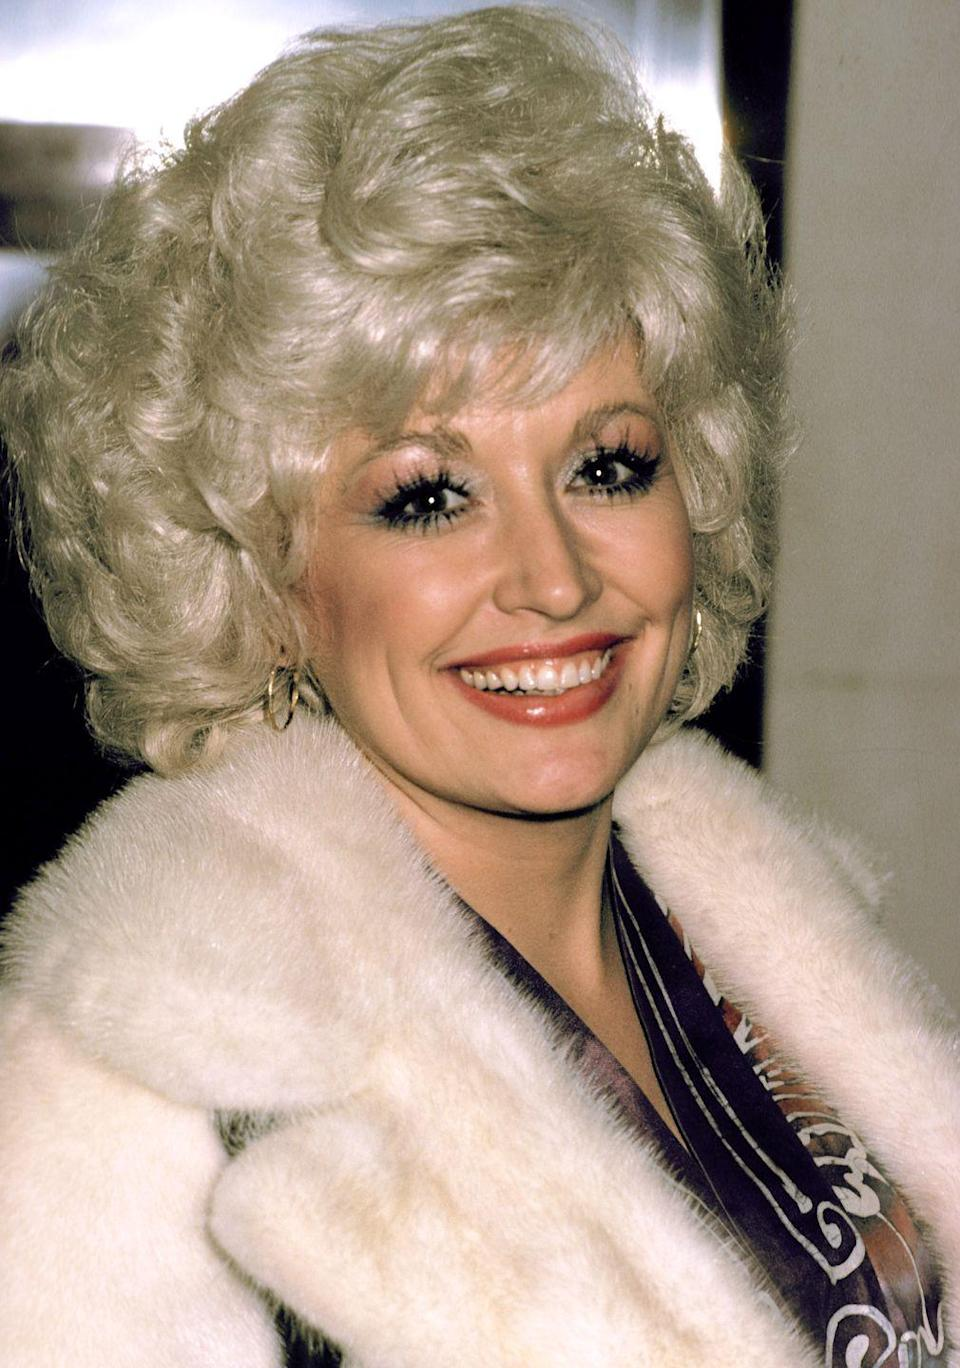 <p> Dolly looks cozy and chic in a fur coat at a premiere in Edinburgh, Scotland. The singer is most-always found in voluptuous makeup and hoop earrings.</p>